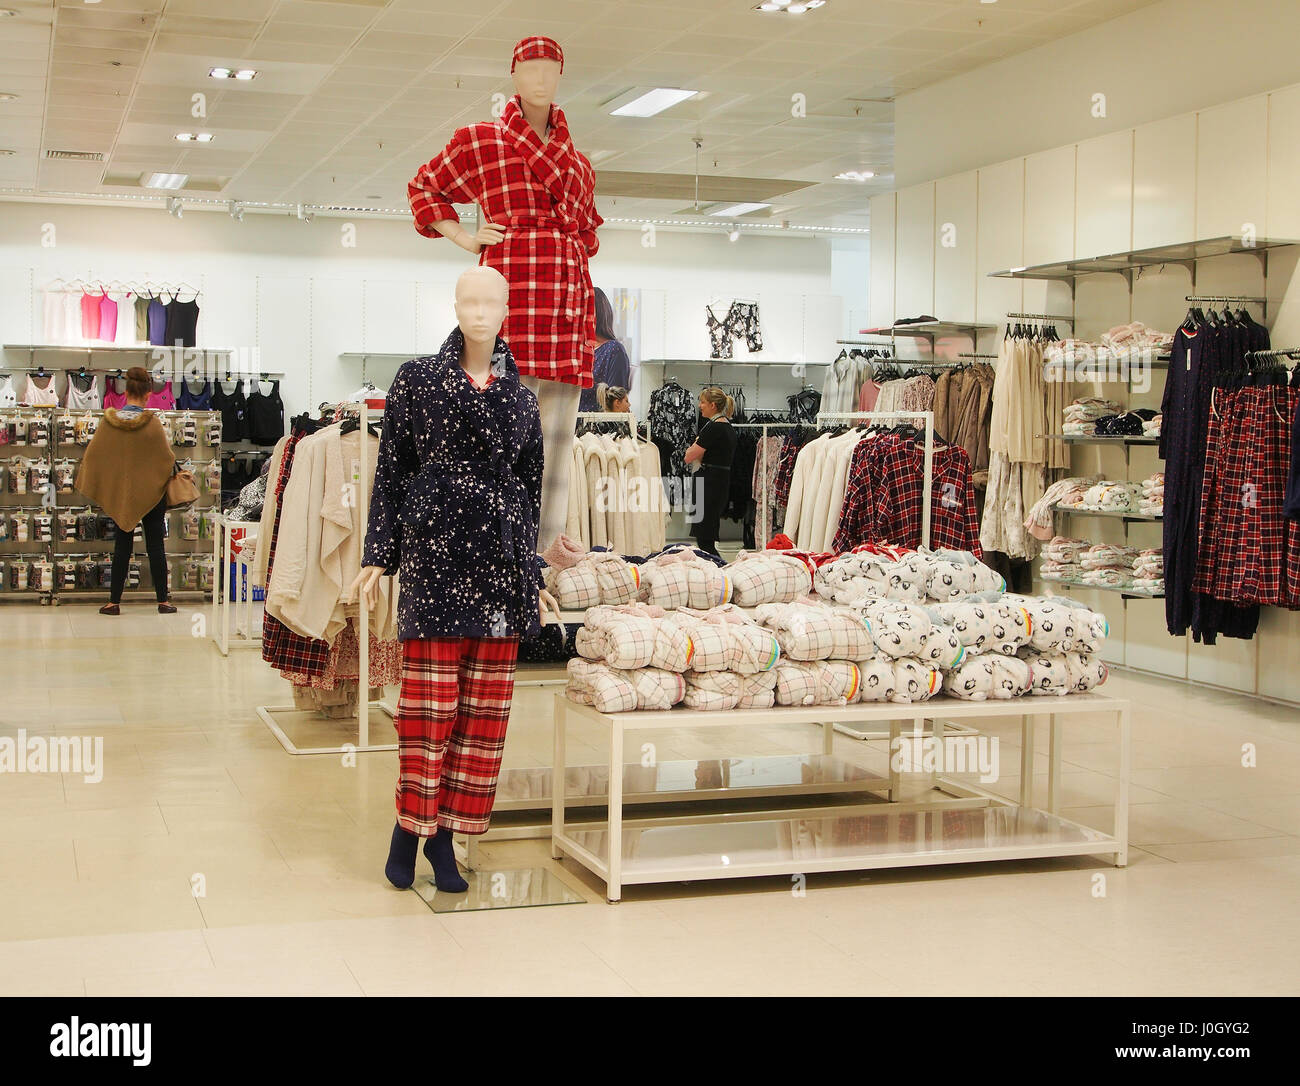 Interior of the Manchester branch of department store Marks & Spencer shop shops in the city centre center showing - Stock Image